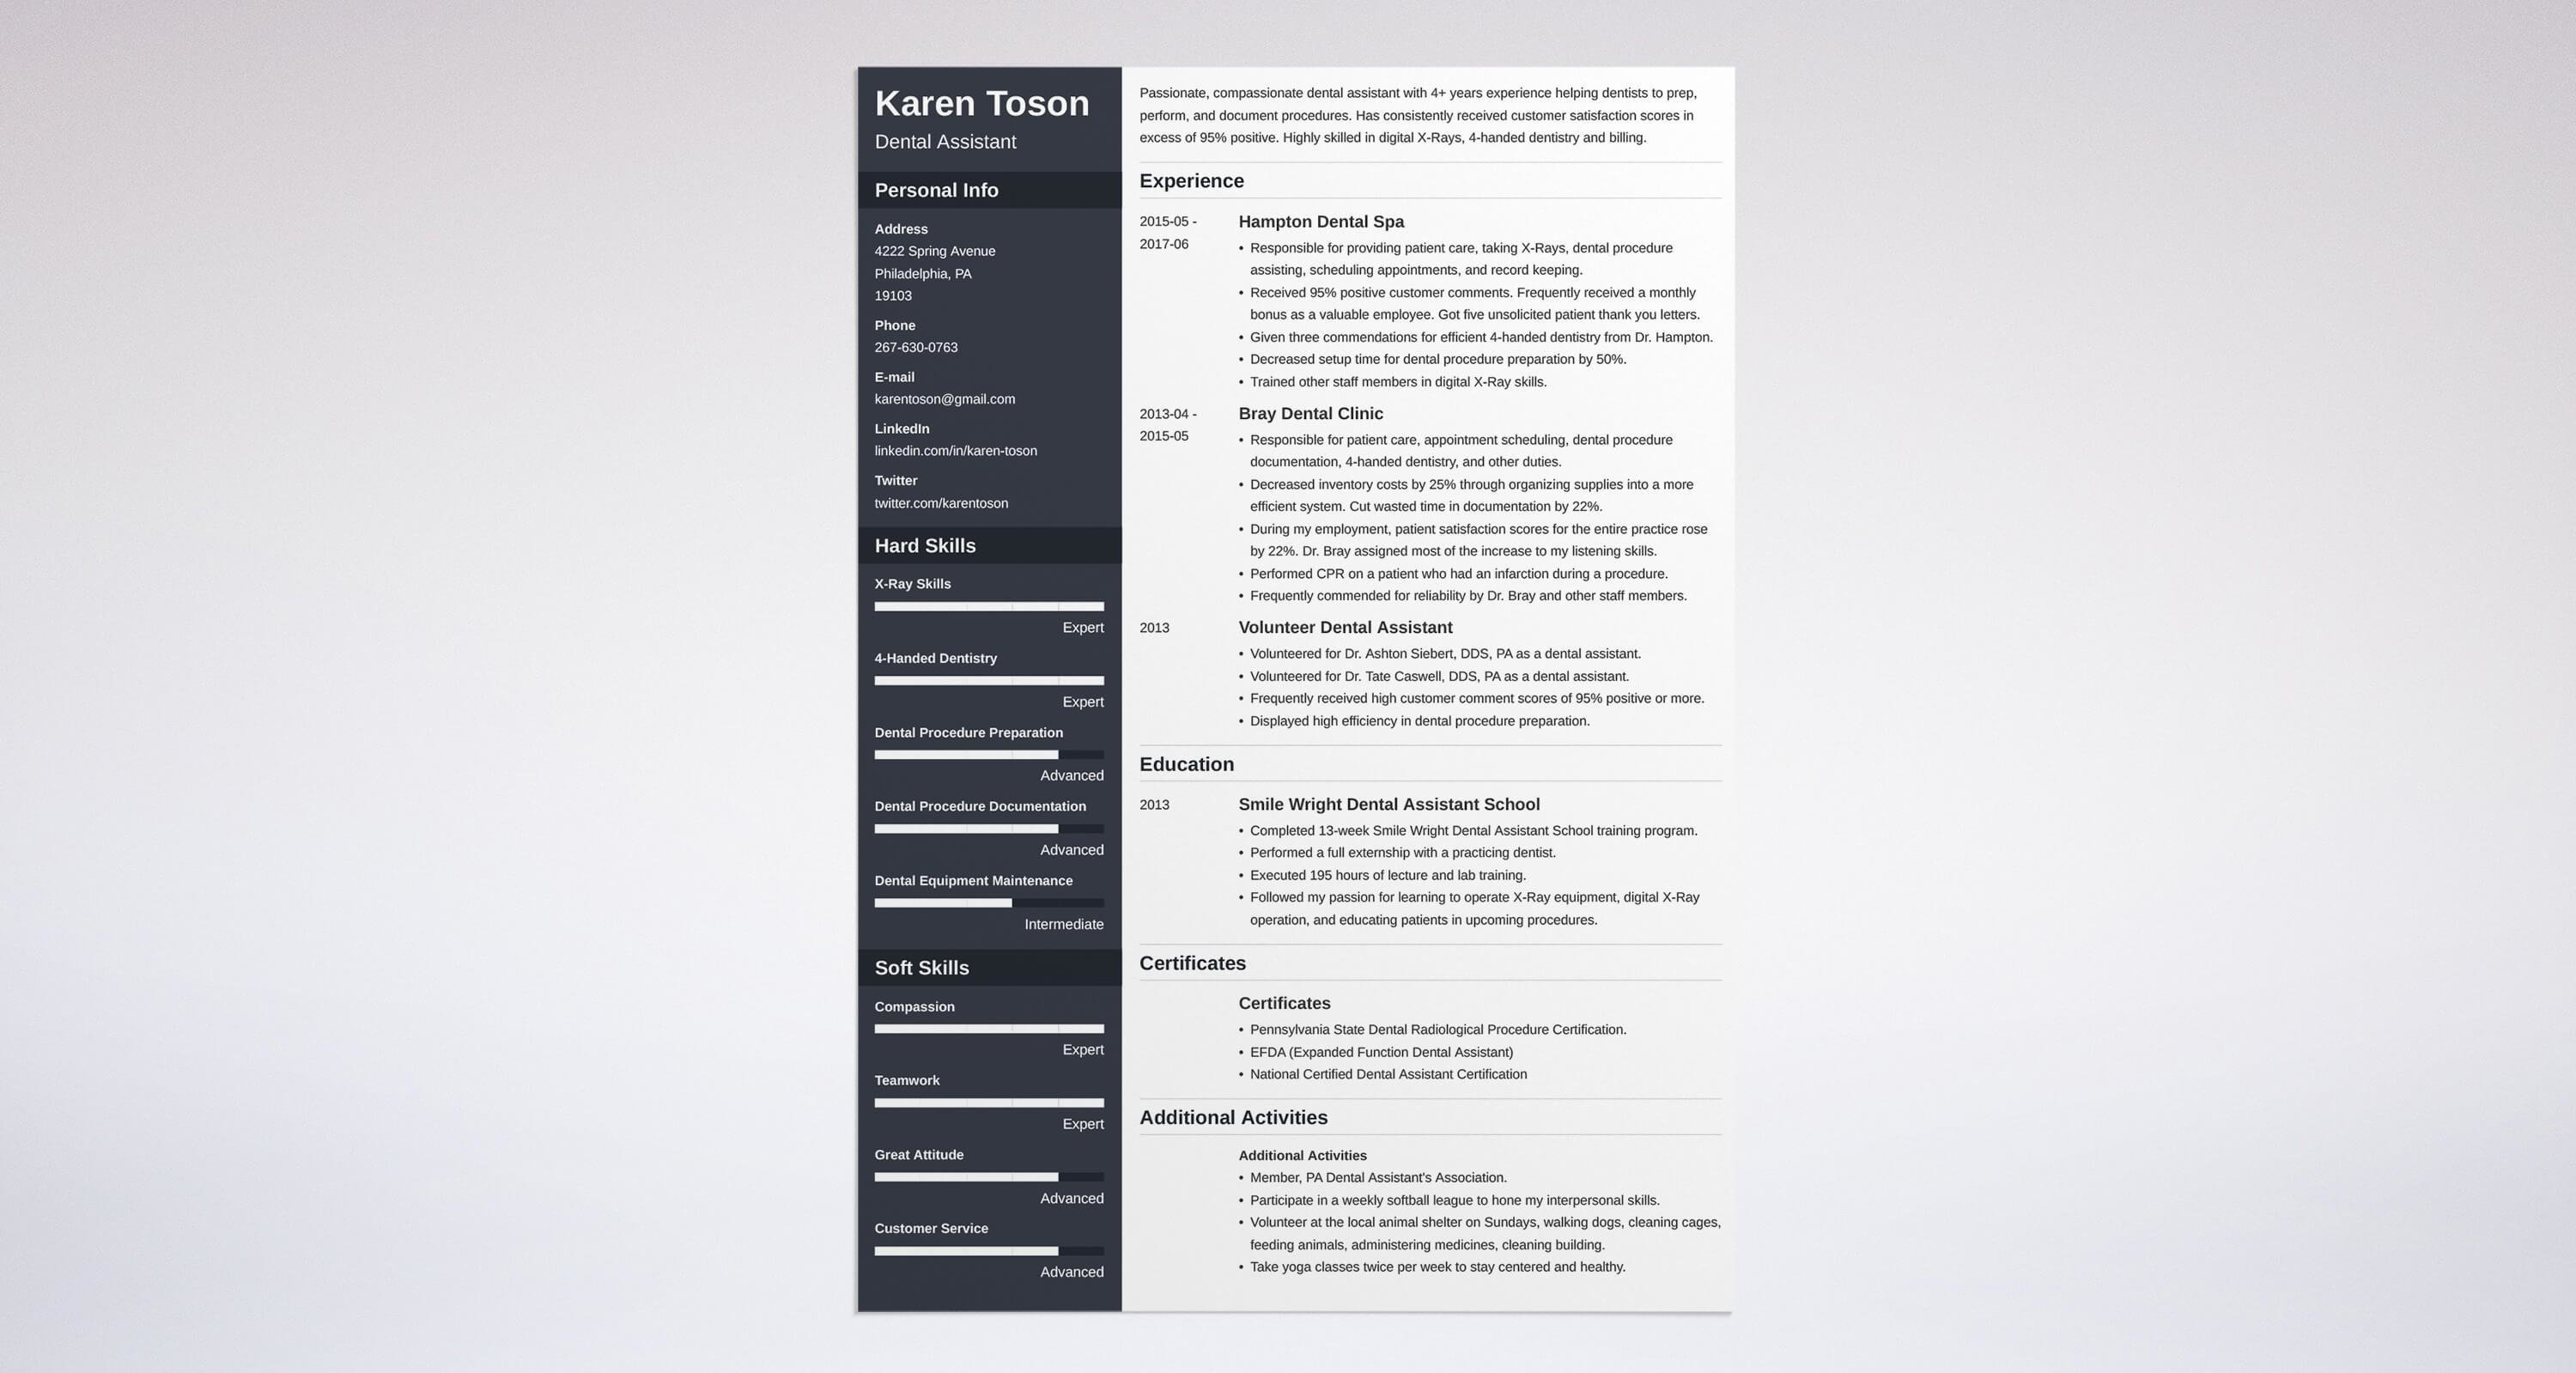 Dental Assistant Resume Sample & plete Guide [20 Examples]